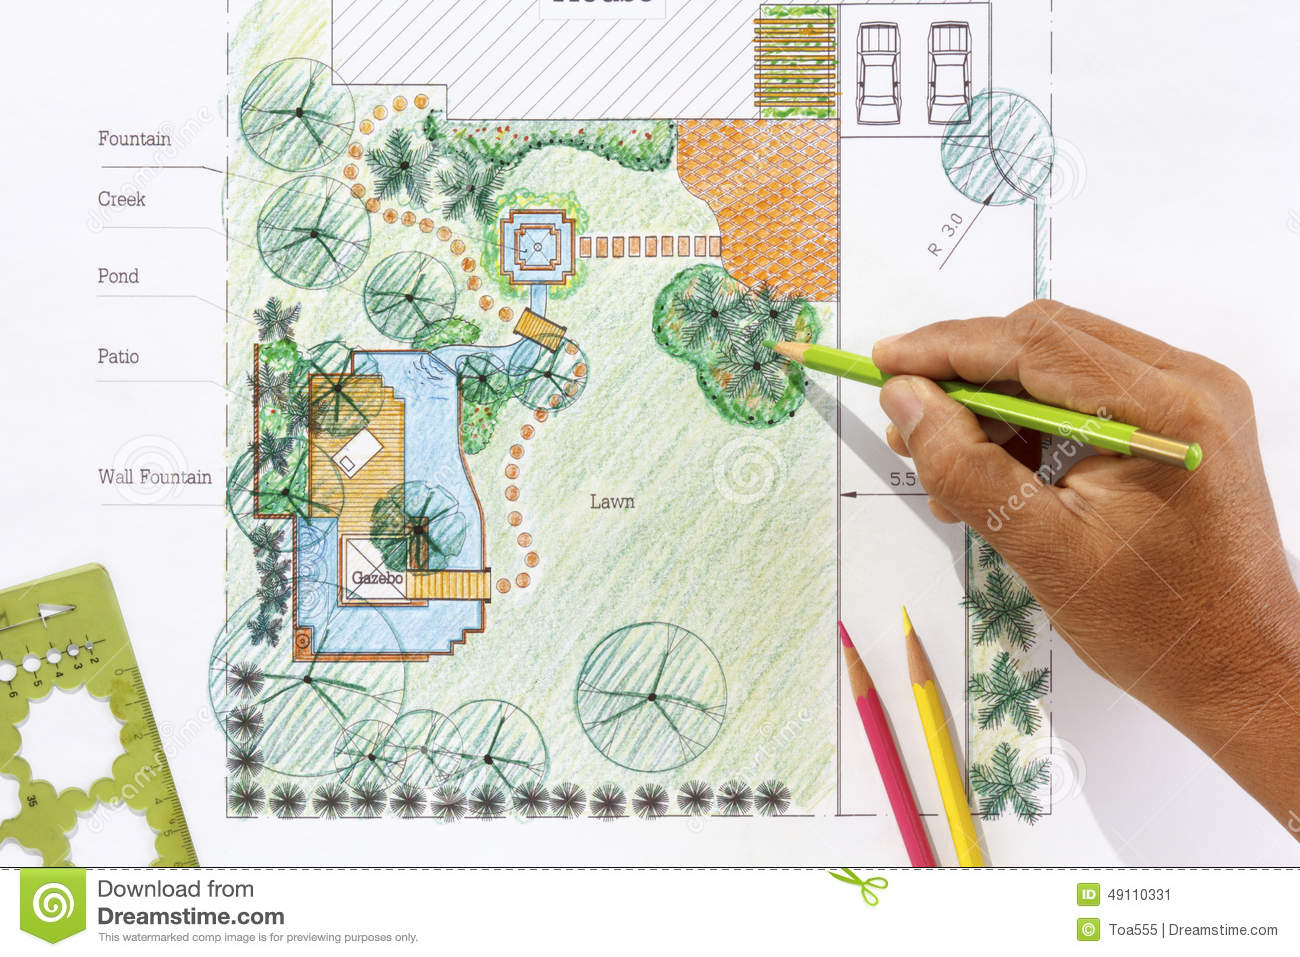 Landscape architect design water garden plans stock photo for Landscape design plans